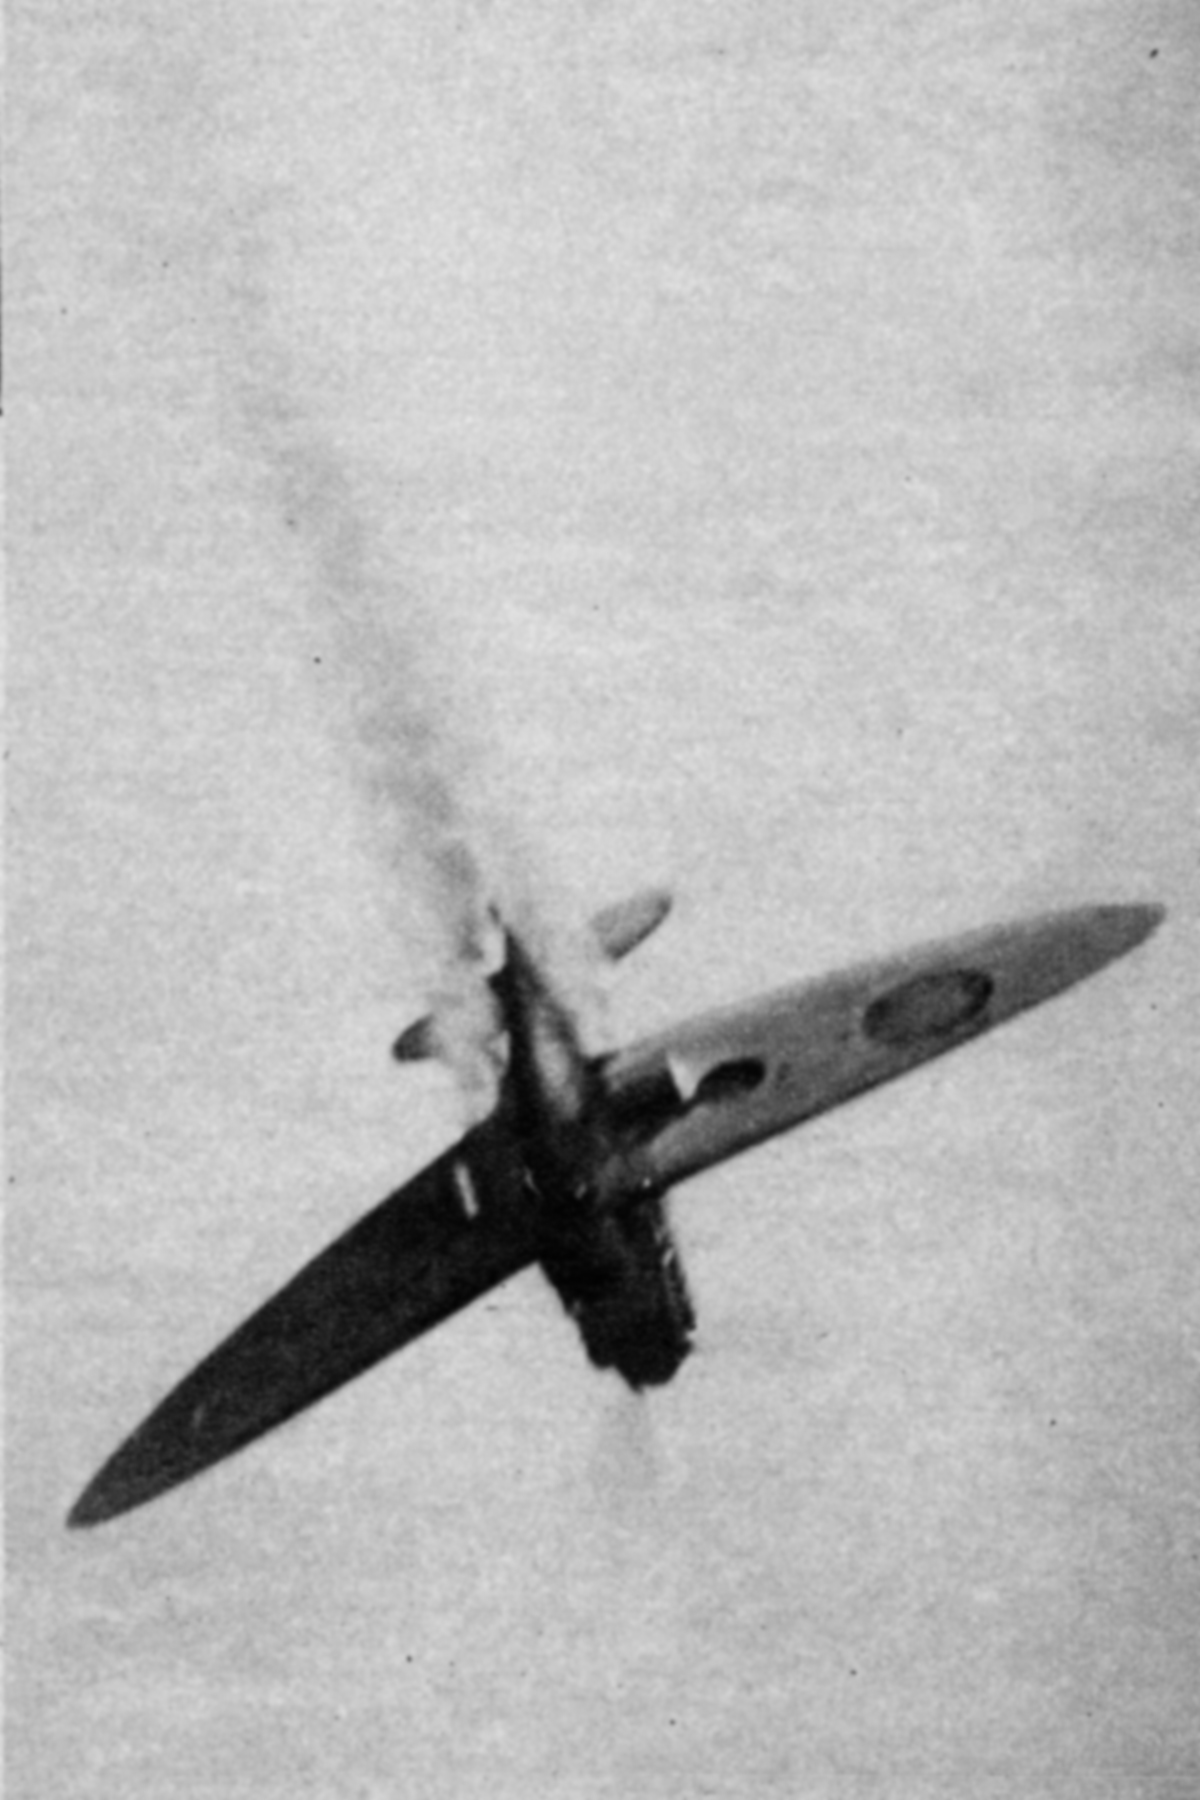 Camera battle footage between Luftwaffe He 111H bombers and a RAF Spitfire off the coast Spring 1941 05